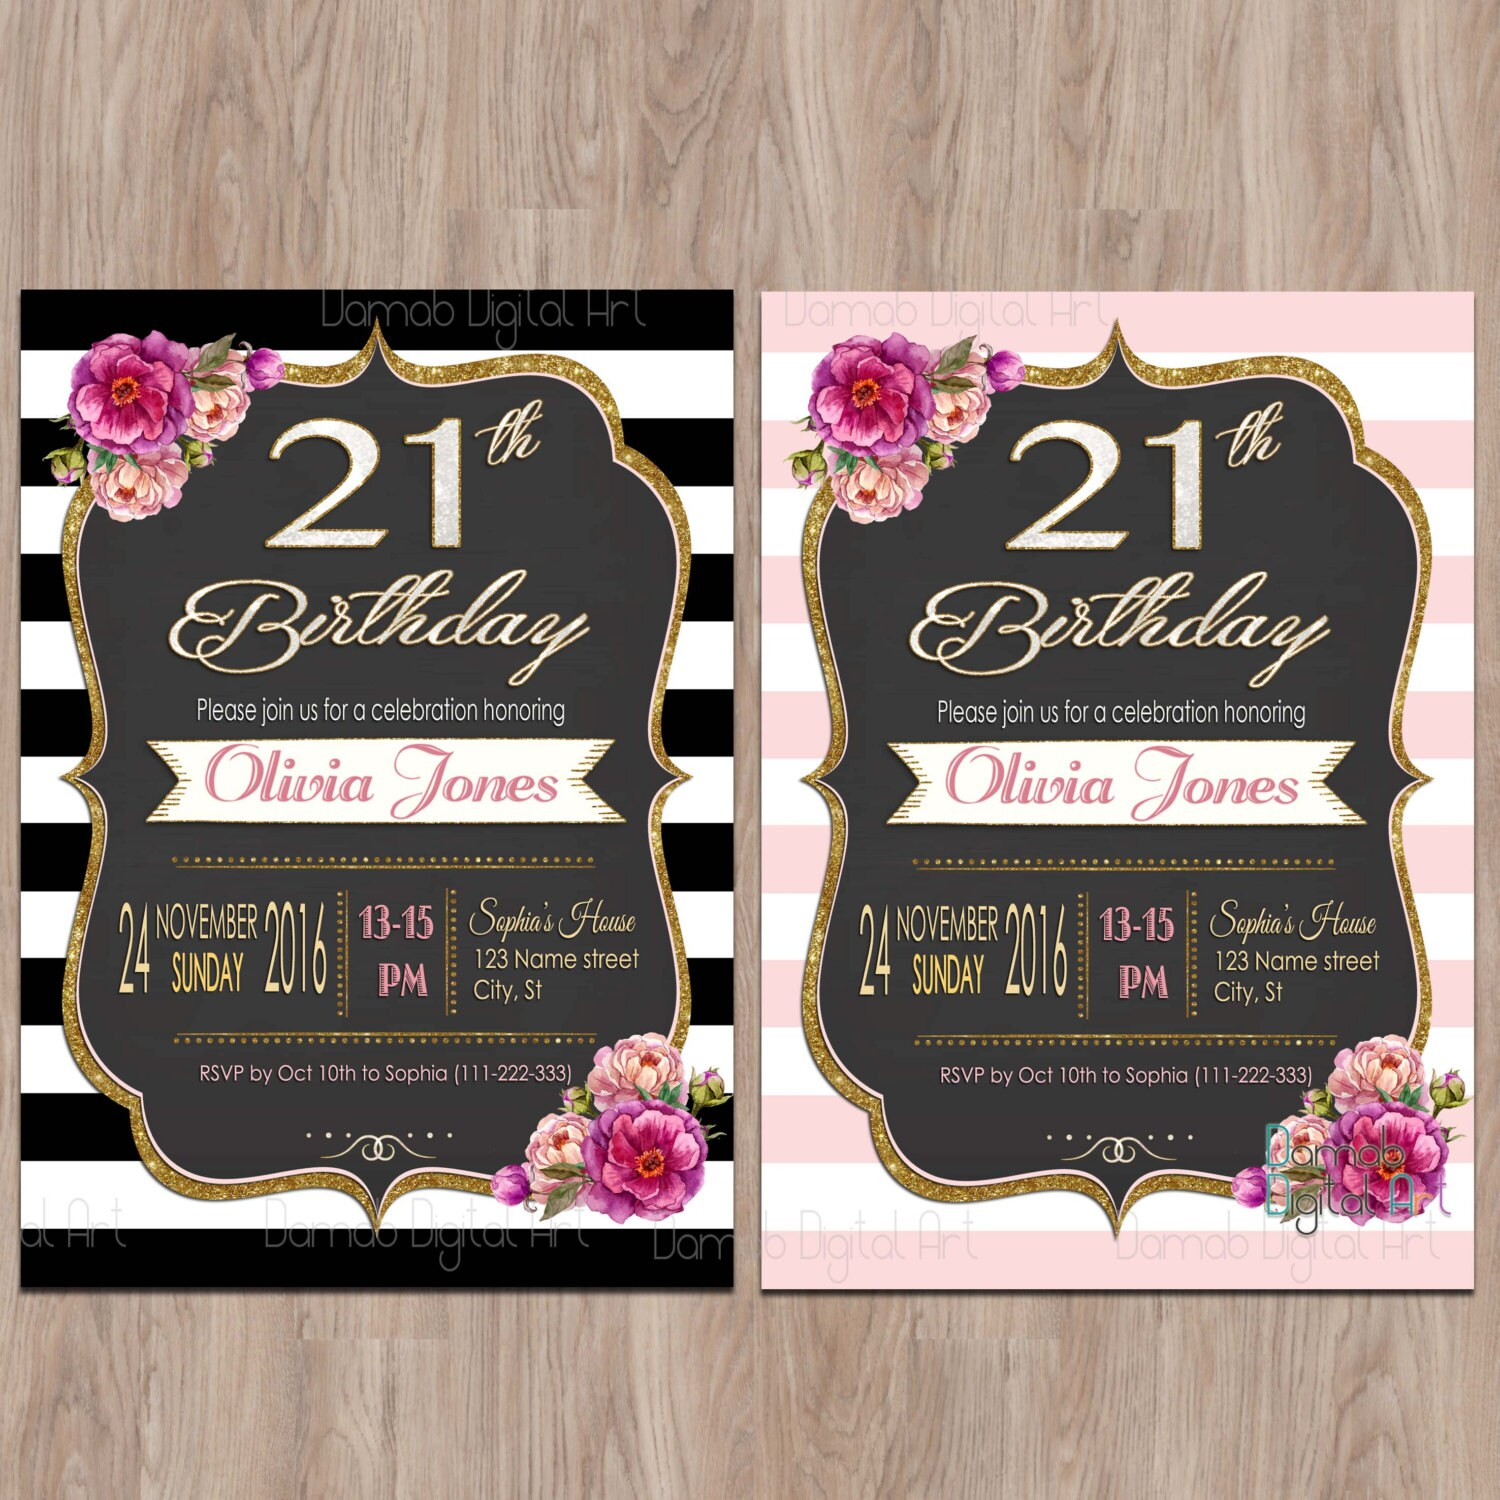 21st birthday invitations 21 birthday invitations Twenty